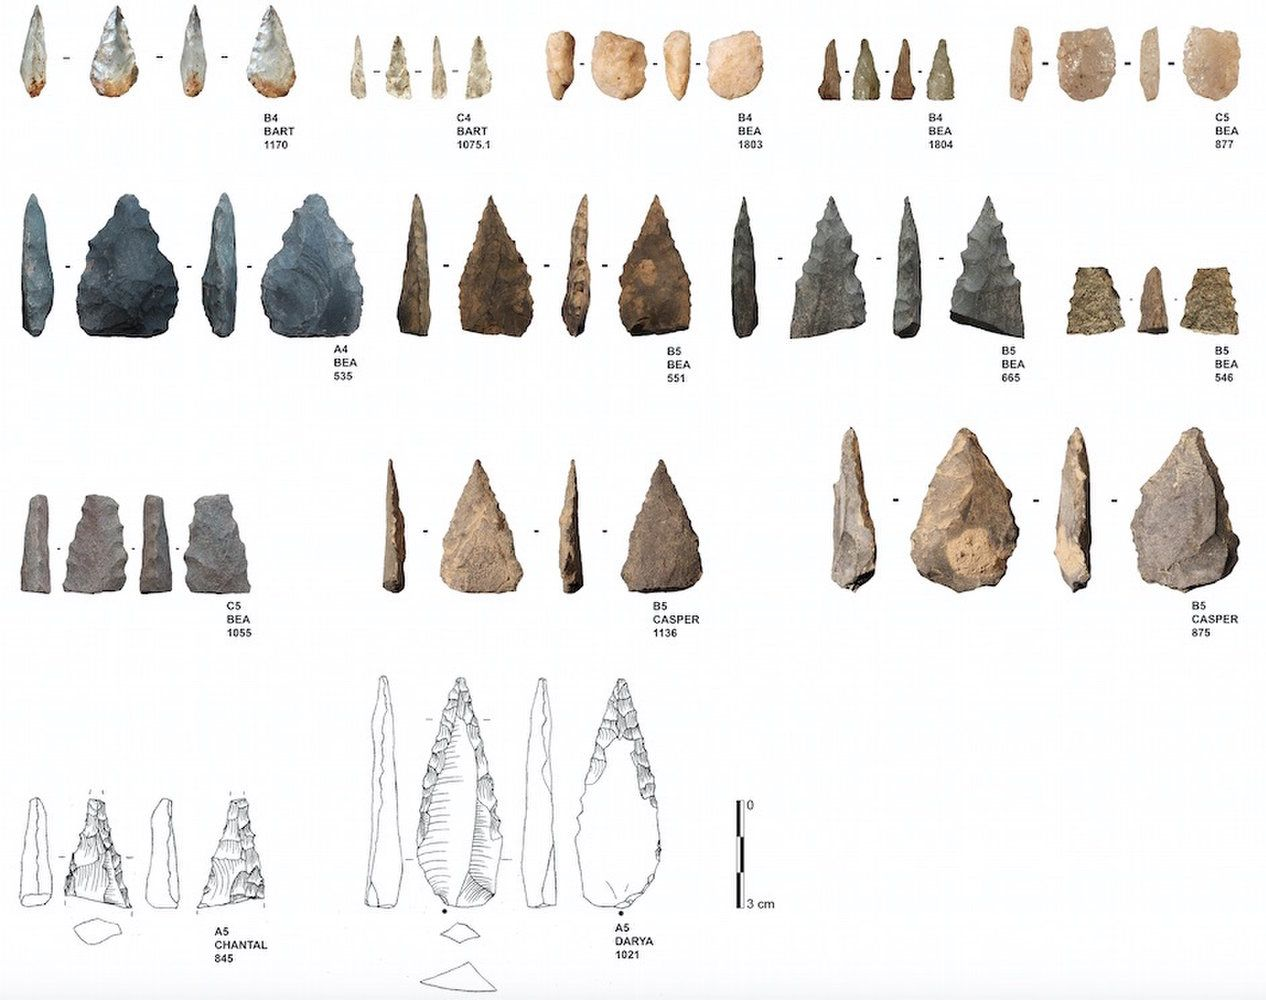 Humans Mastered Advanced Weapon Making Technique 77 000 Years Ago